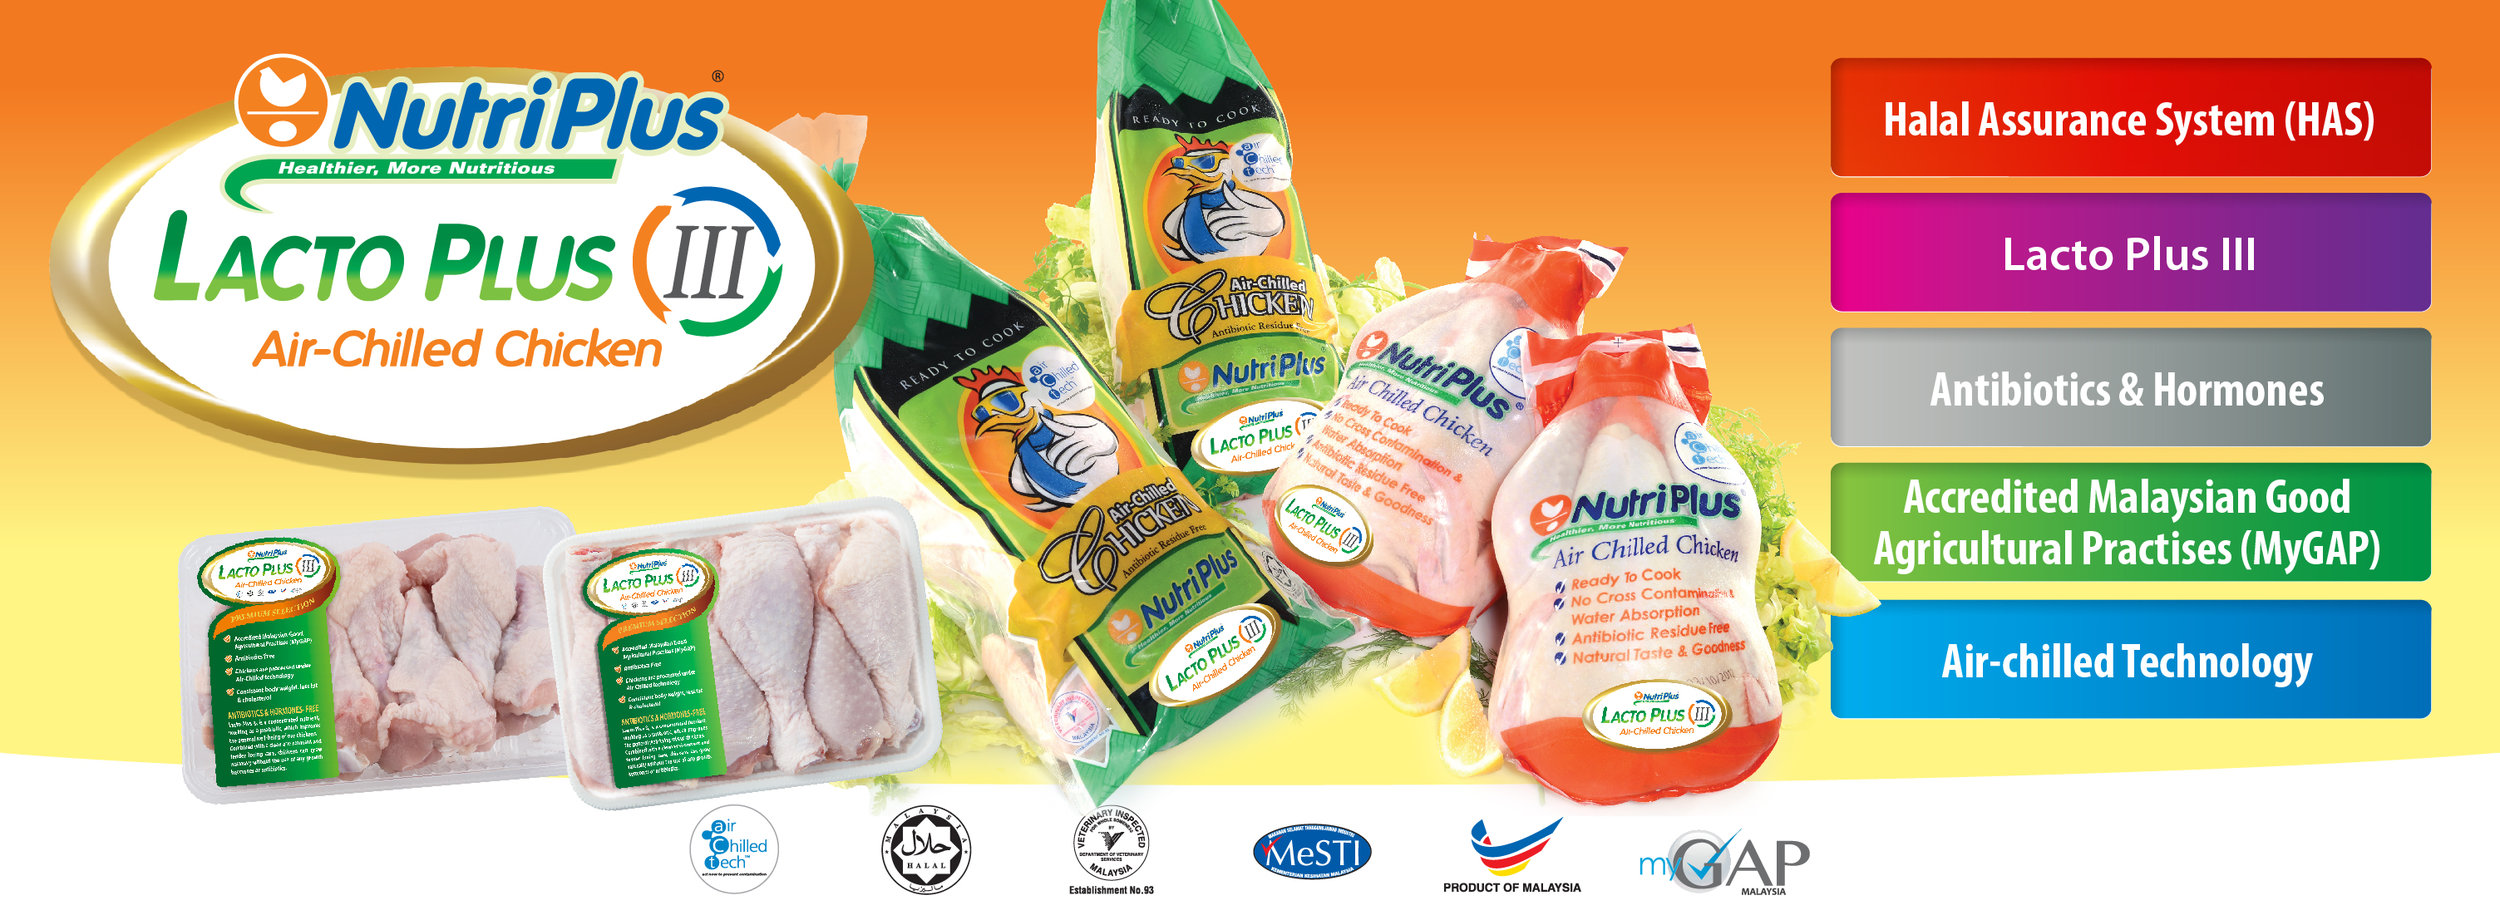 Copy of Lacto Plus III Air-chilled chicken